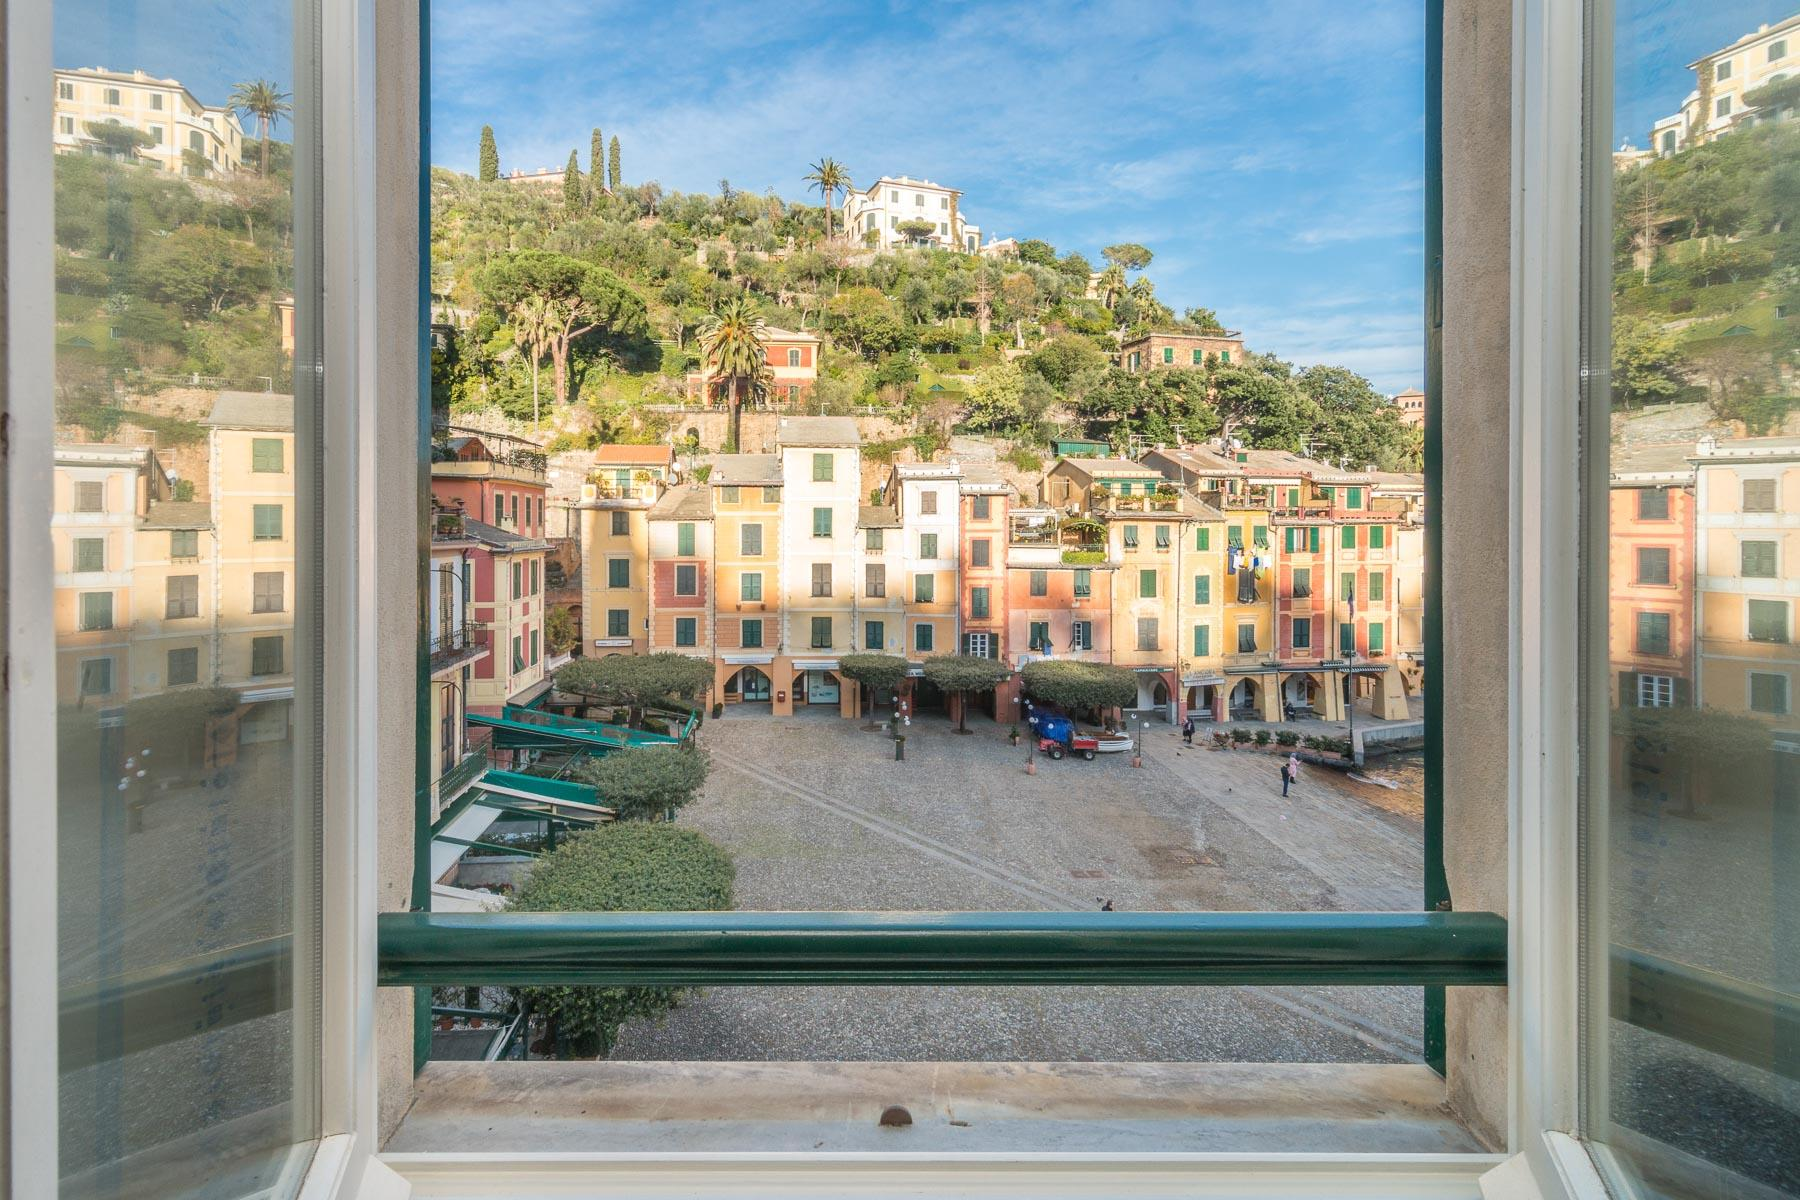 Penthouse overlooking the Piazzetta and Portofino Bay - 3